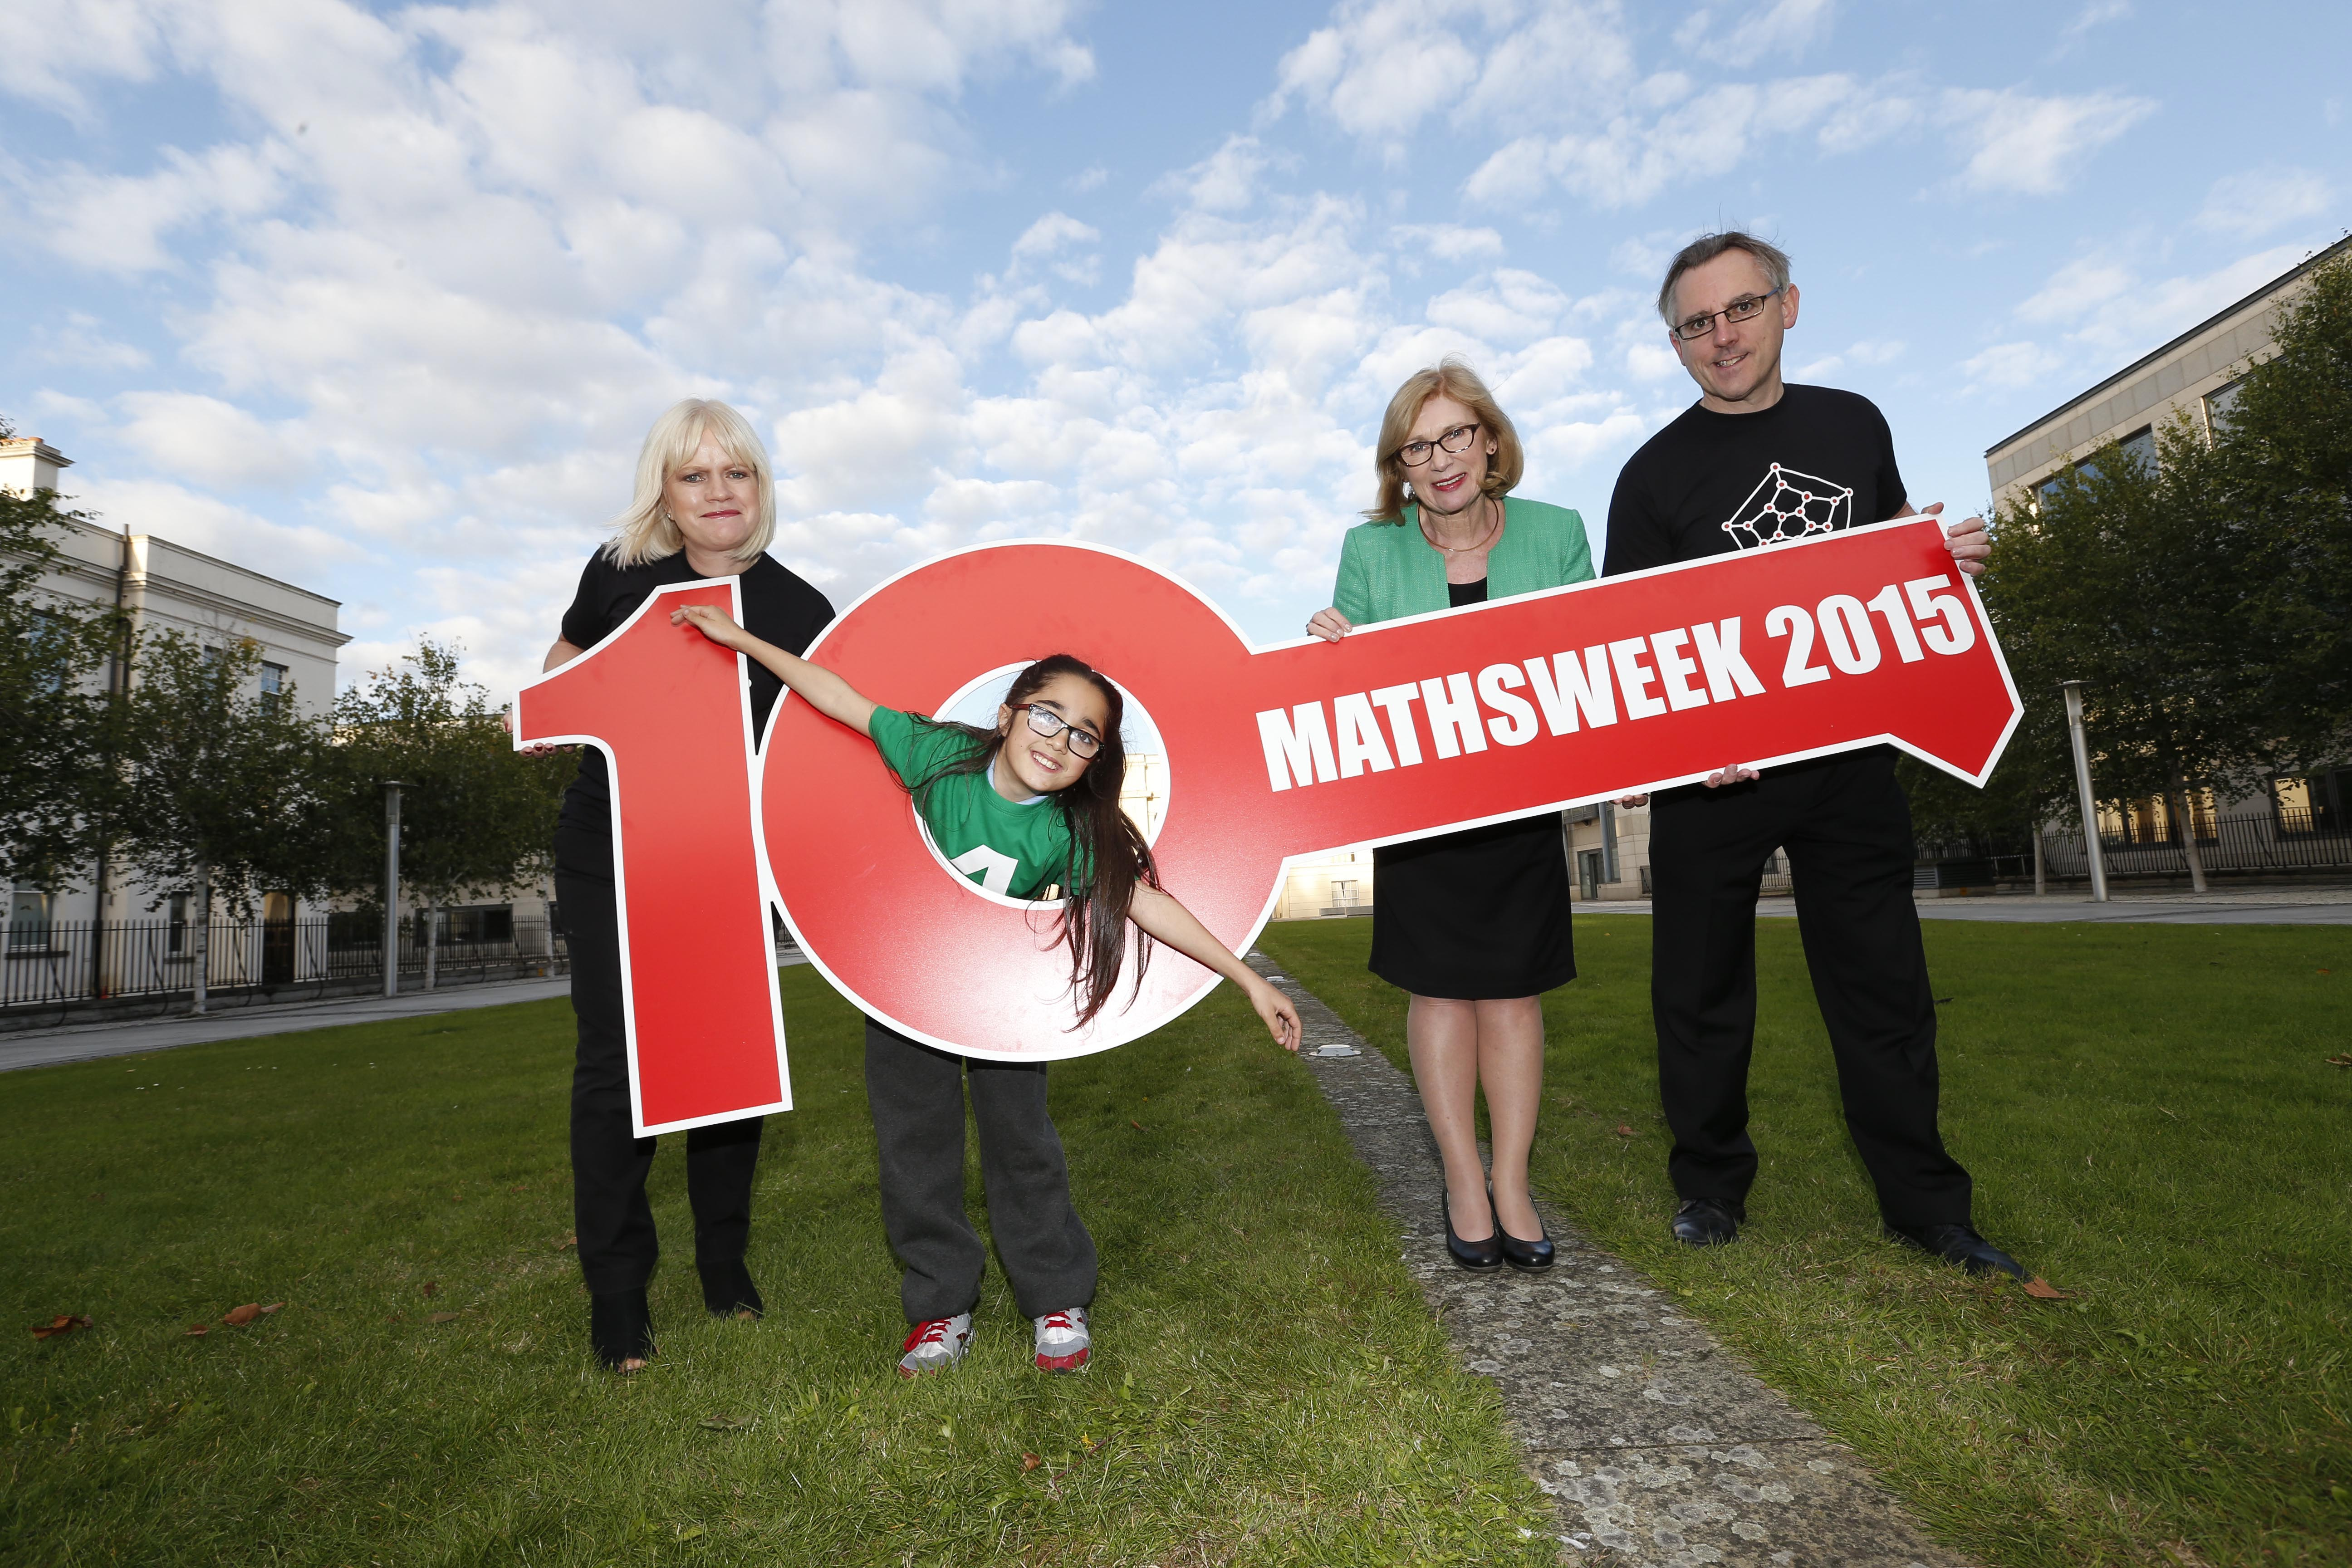 Pictured at the launch of Maths Week Ireland were Sheila Donegan Maths Week and Minister for Education and Skills Jan O'Sullivan TD with Eoin Gill Maths Week and maths pupil Sheyma Hudson.